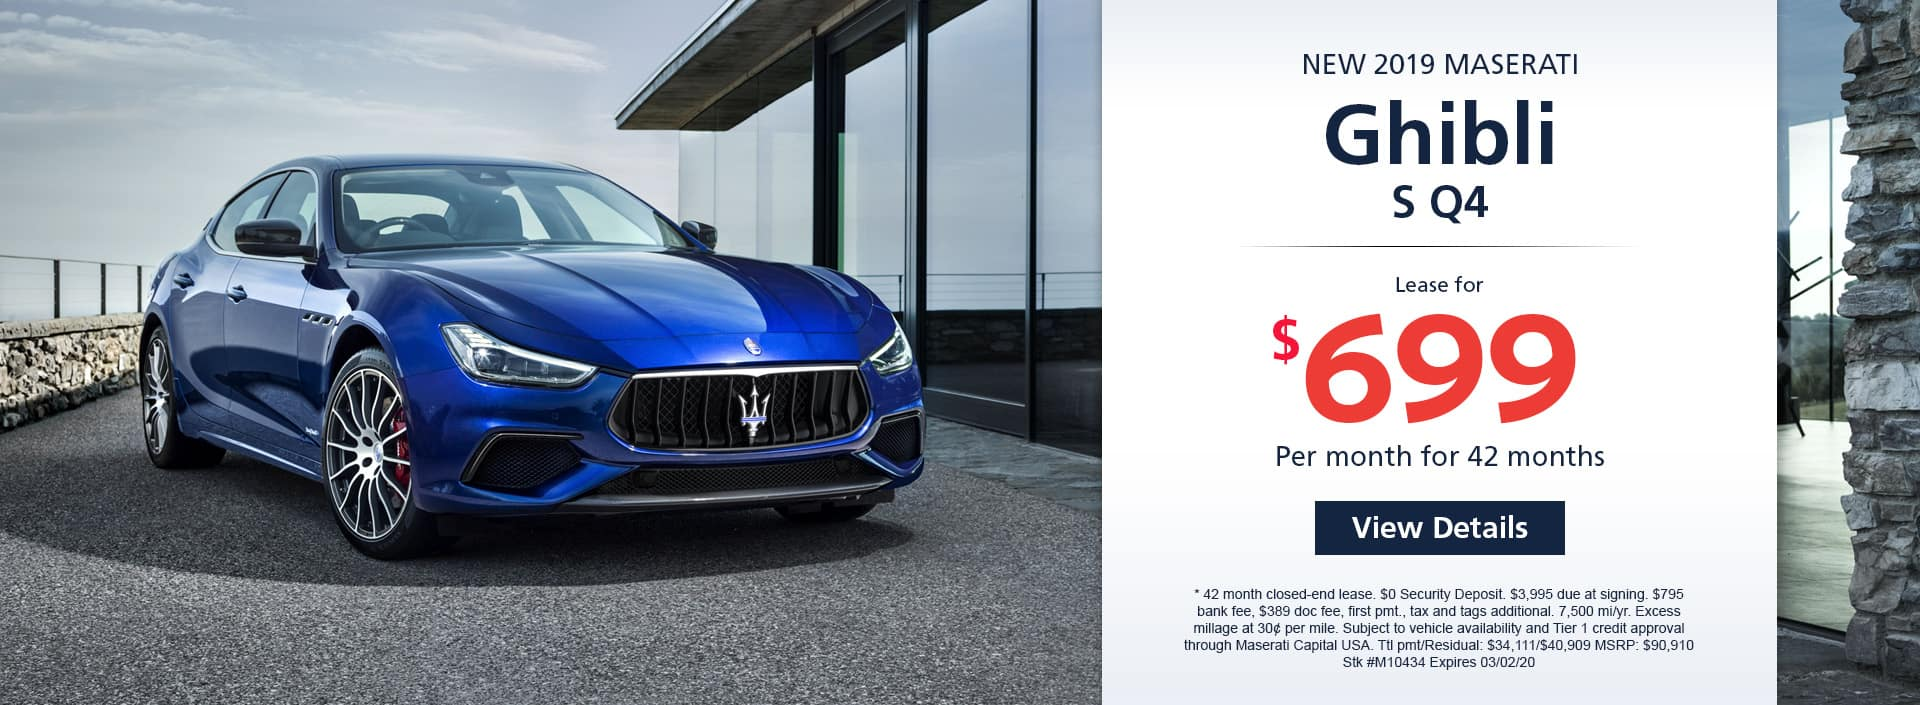 Lease a new 2019 Maserati Ghibli S Q4 for $699 a month for 42 months. Or get special 0% APR financing for up to 60 months or 0% APR financing up to 84 months